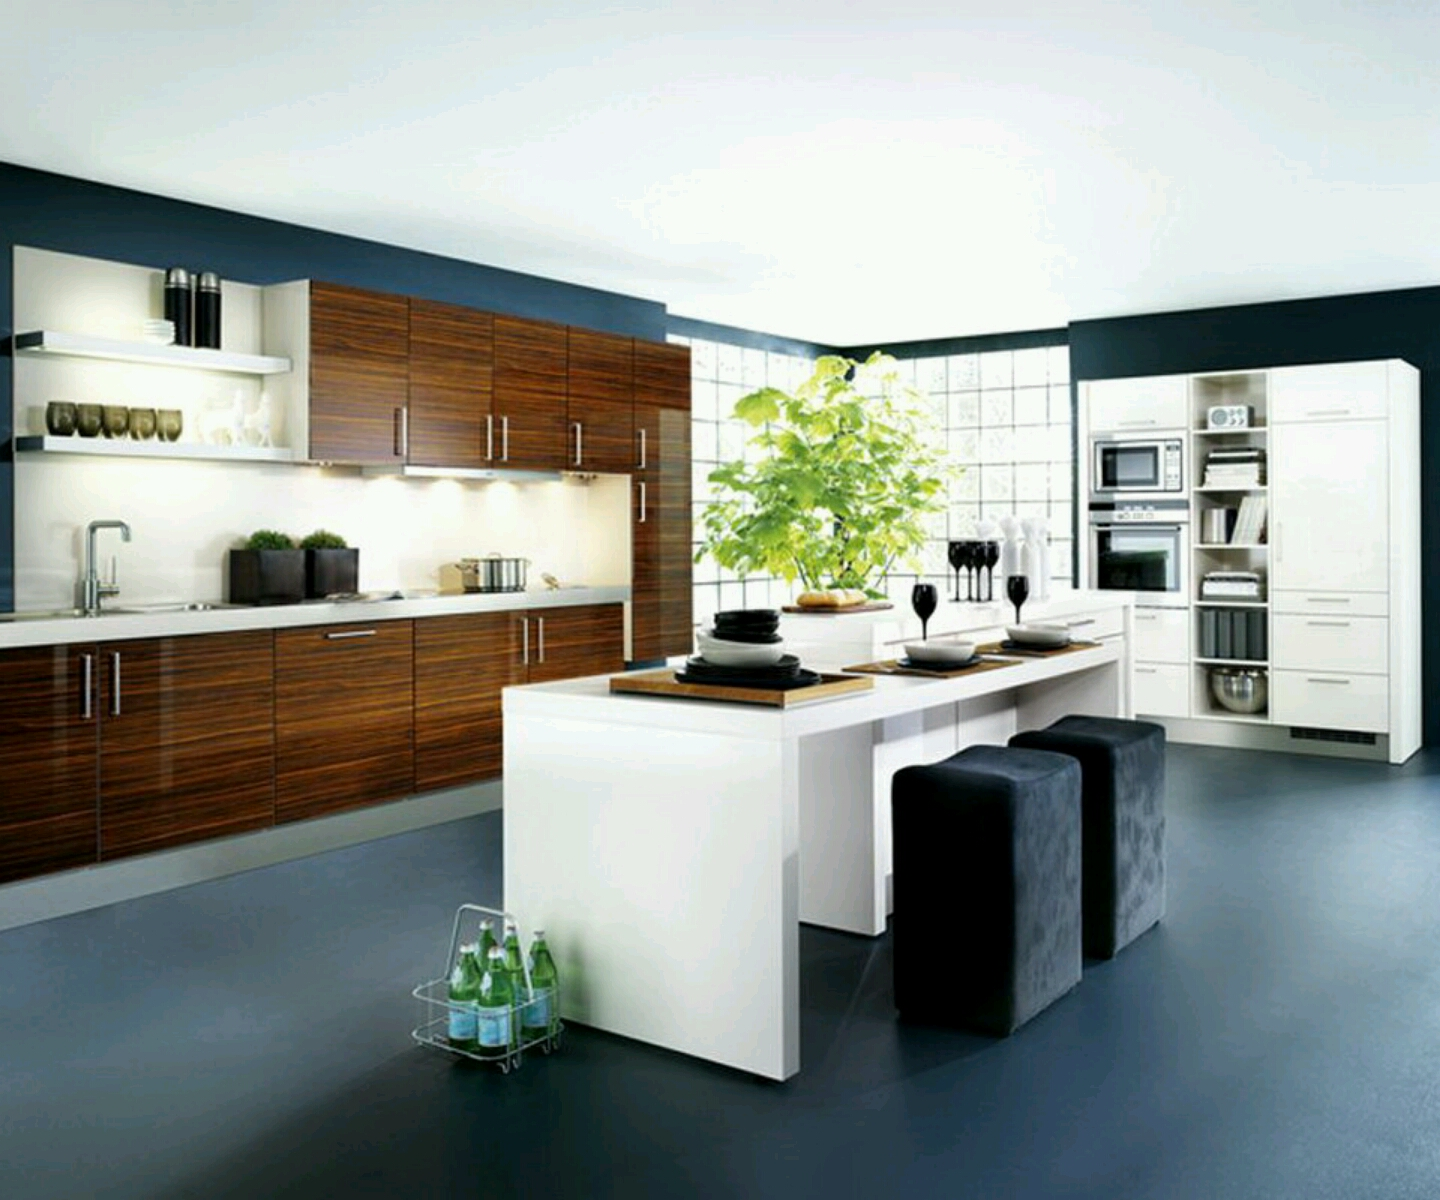 New home designs latest kitchen cabinets designs modern for Contemporary kitchen units